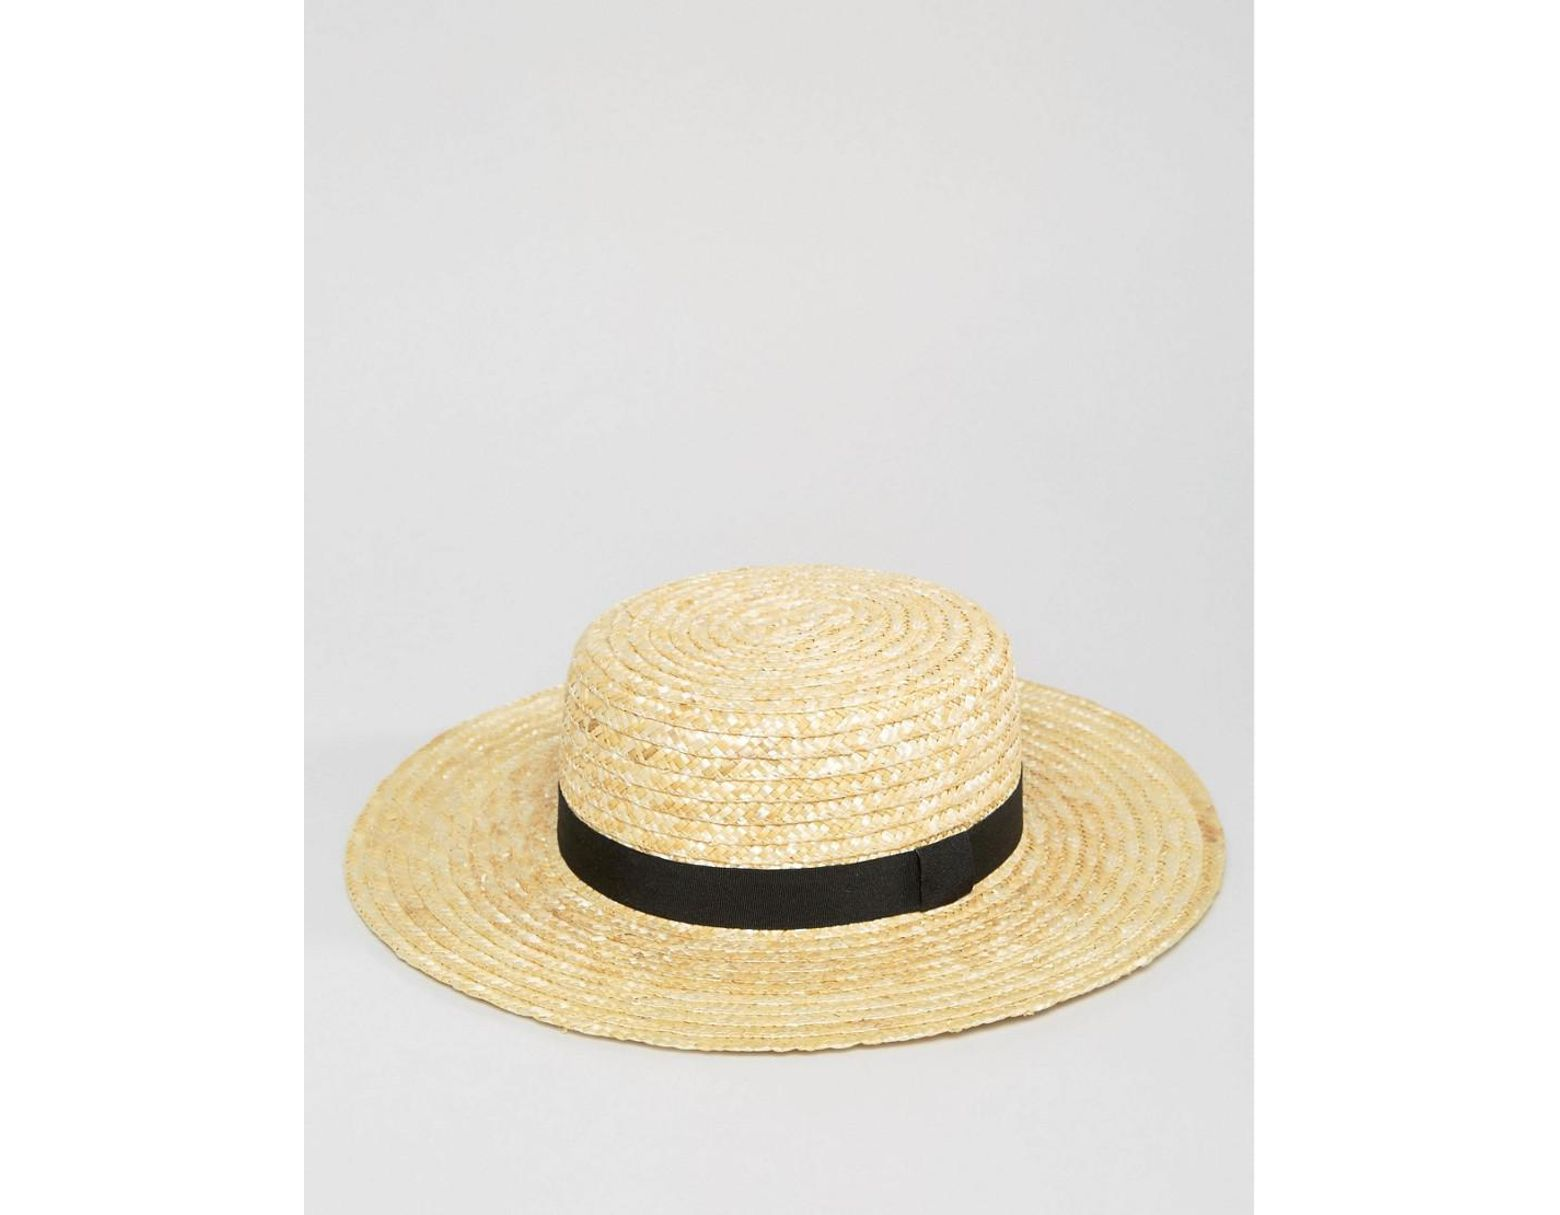 8e5158ca23a81d South Beach Straw Boater Hat With Black Ribbon in Natural - Lyst